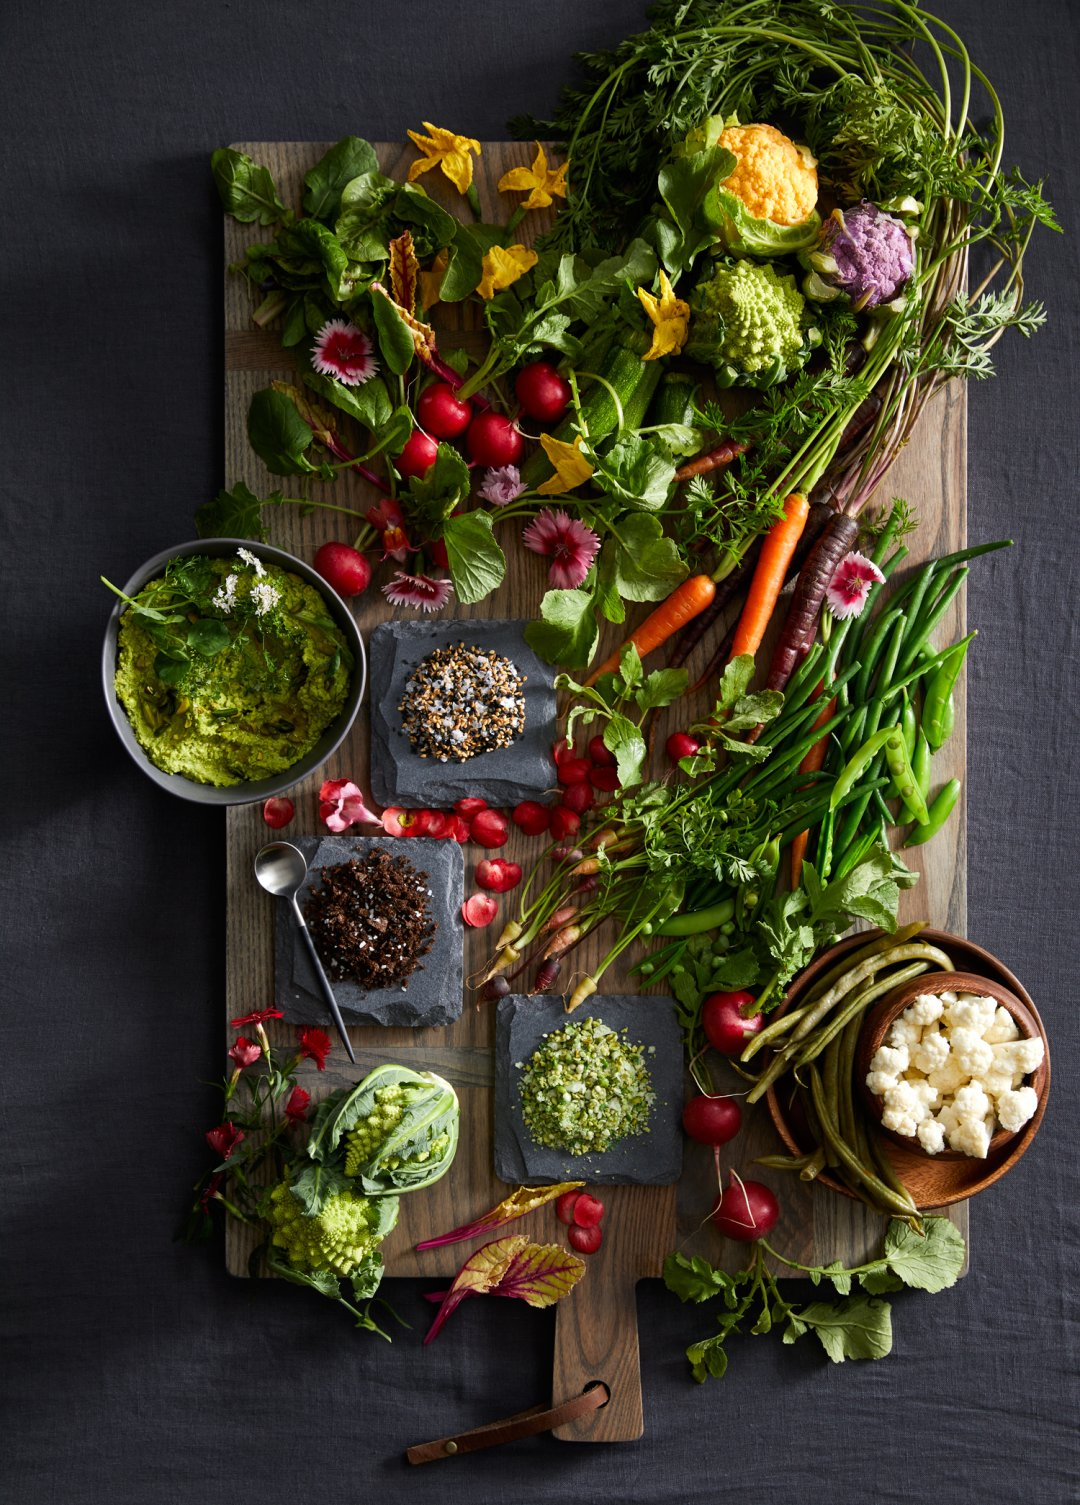 Veggie board with carrots, green beans and radishes along with dips and flavored salts on the side